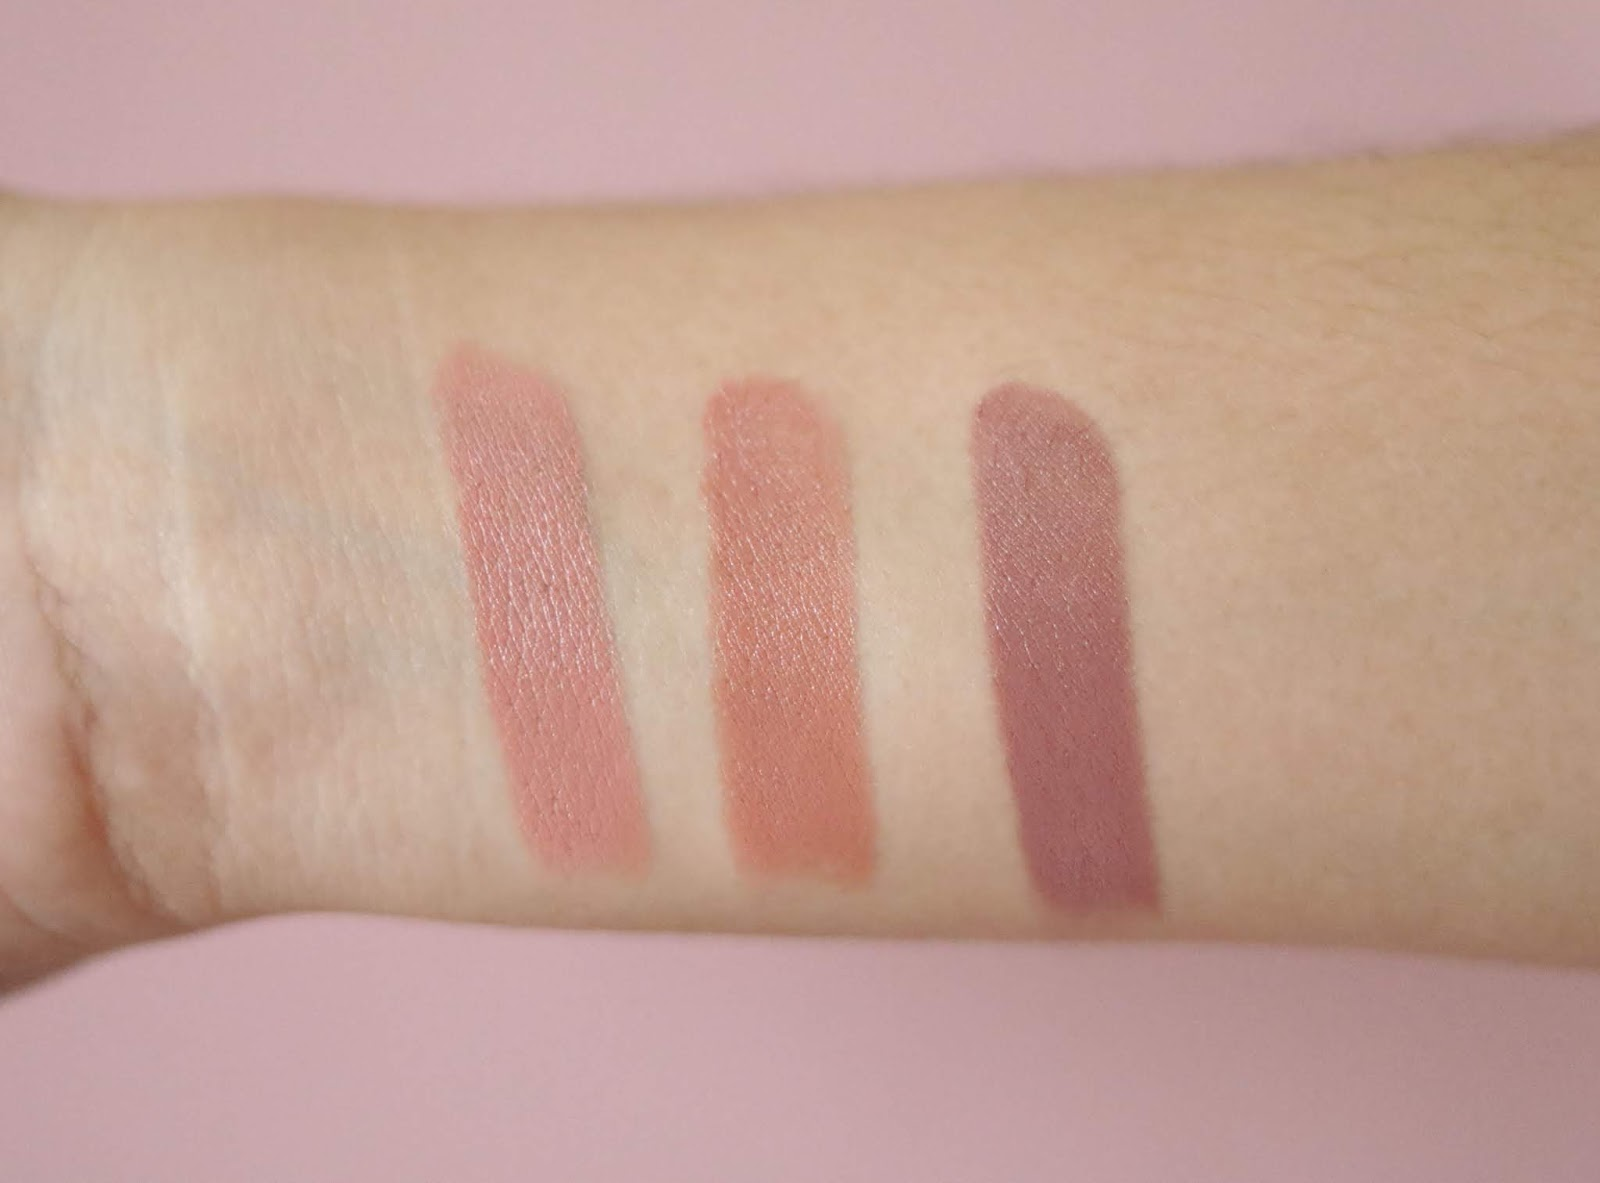 It Just Comes Naturally,Too Faced, Natural Face,Natural Nudes Lipsticks,Overexposed ,BirthdaynSuit ,Strip Search , May 2018 , revue, avis , rose mademoiselle , rosemademoiselle,